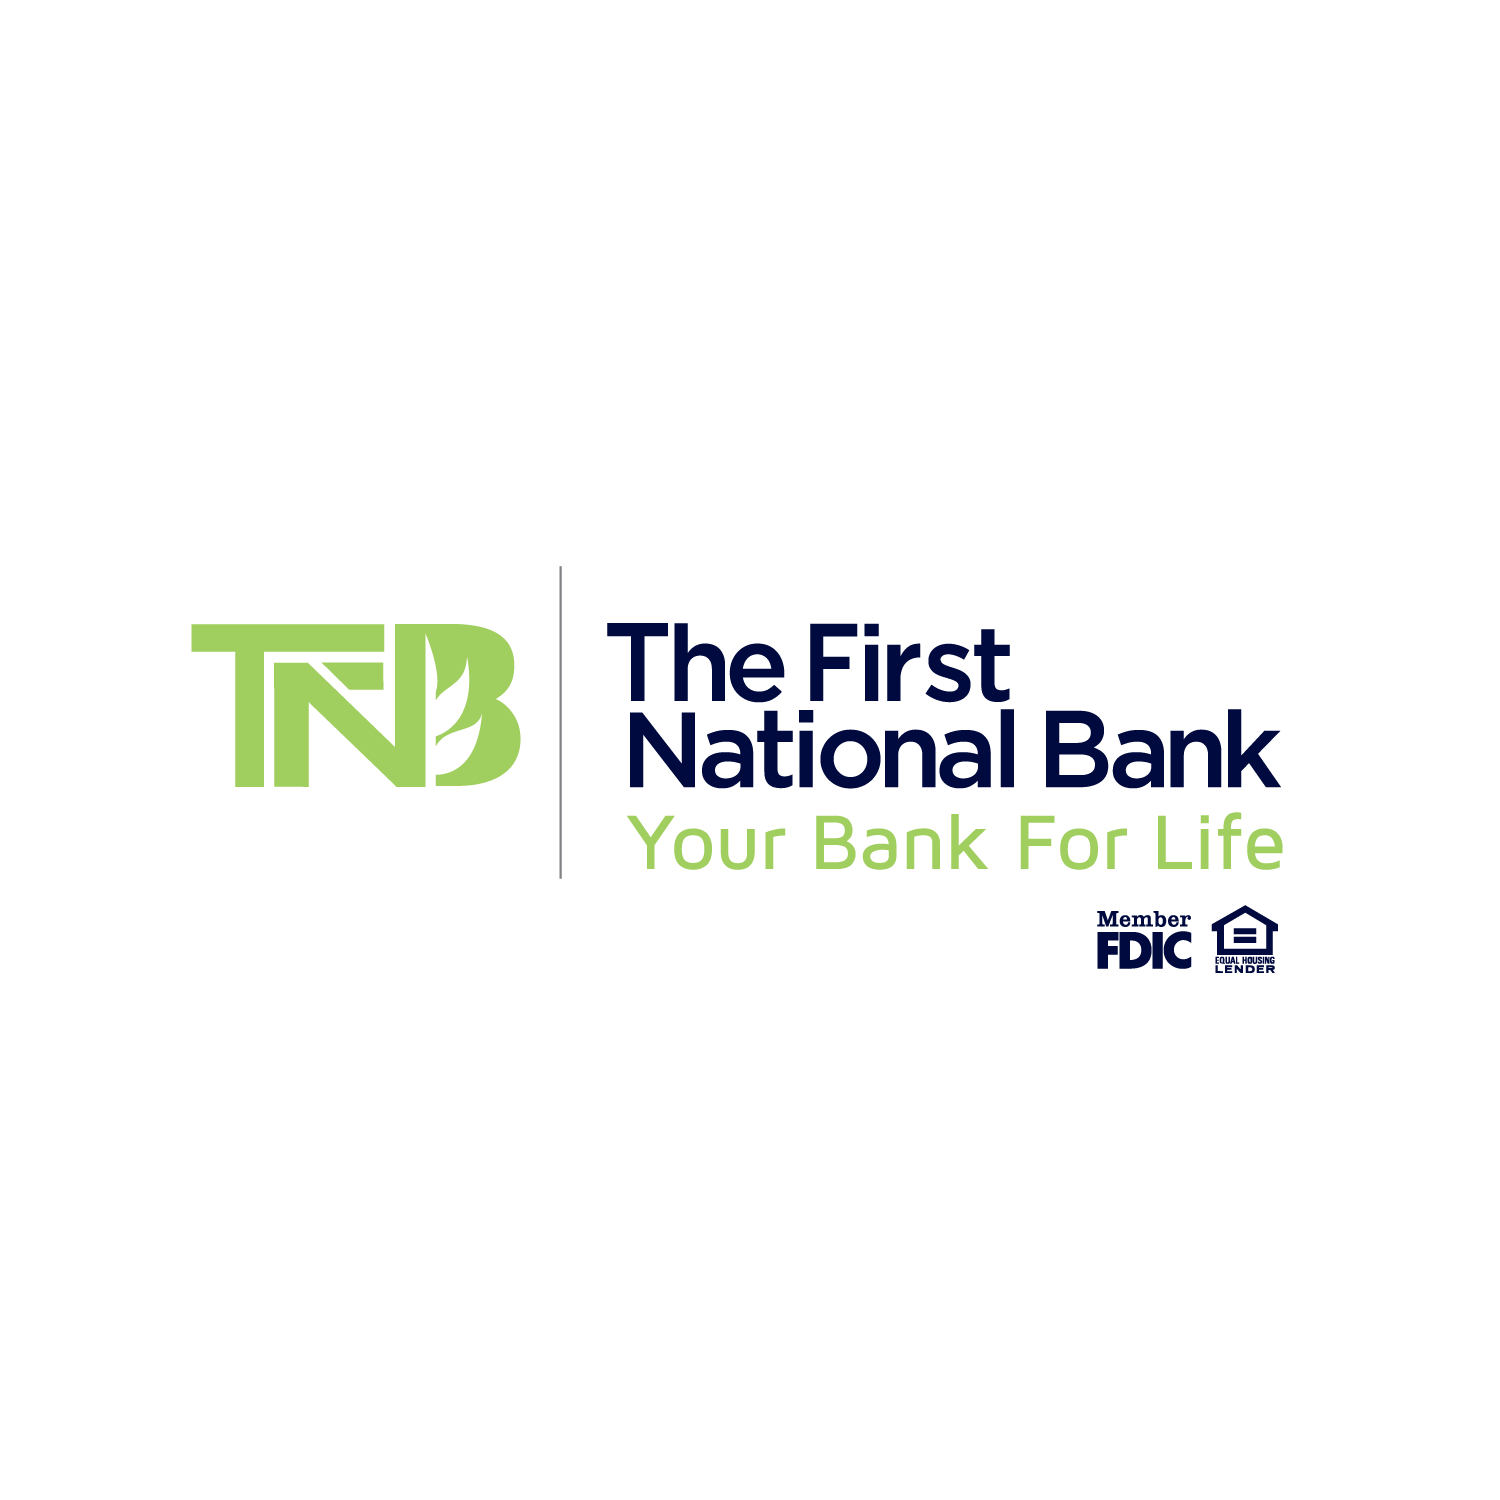 The First National Bank - Your Bank for Life